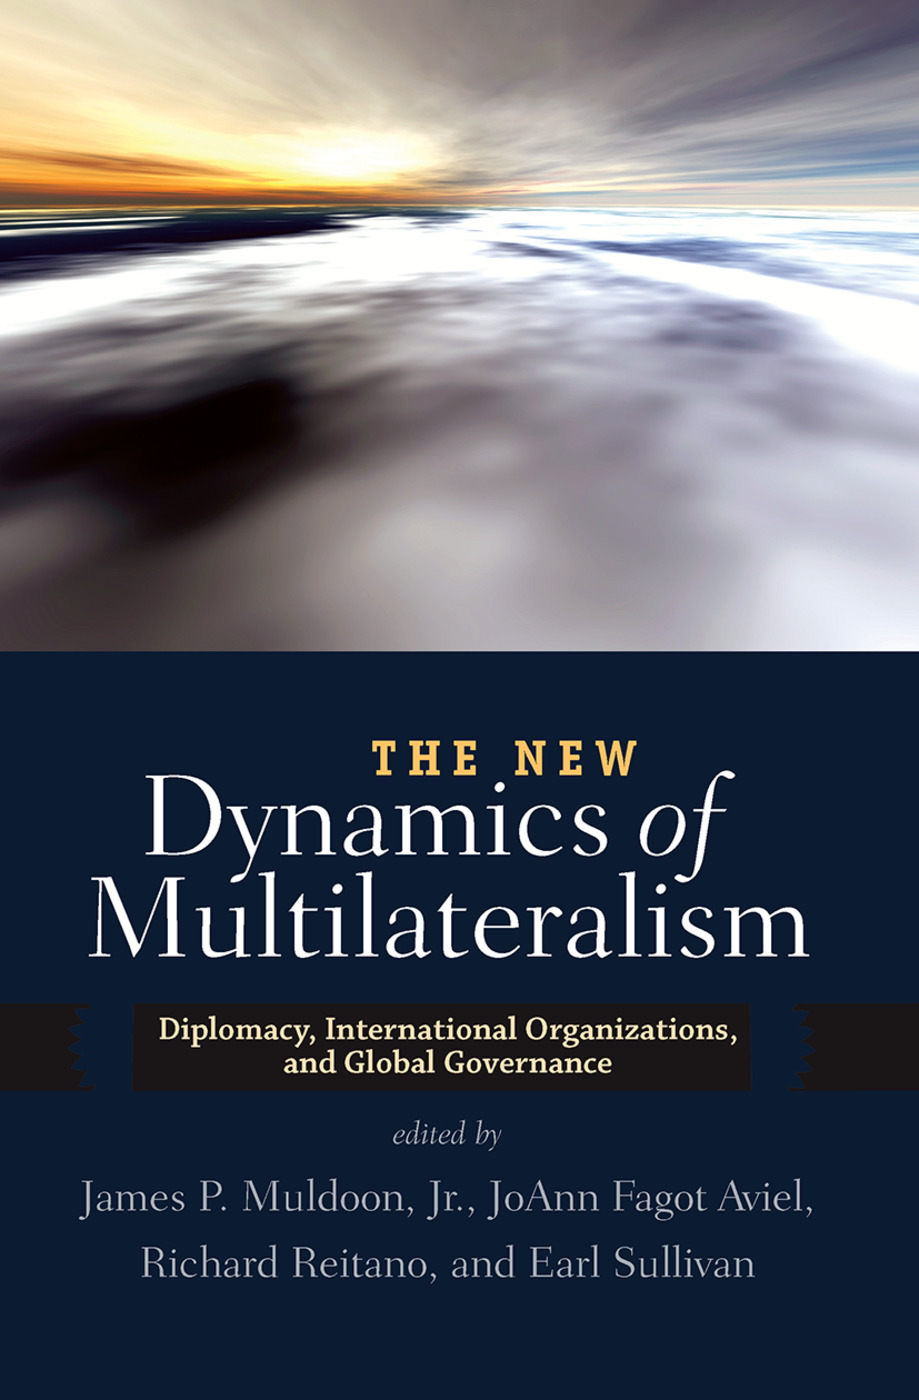 The New Dynamics of Multilateralism: Diplomacy, International Organizations, and Global Governance book cover